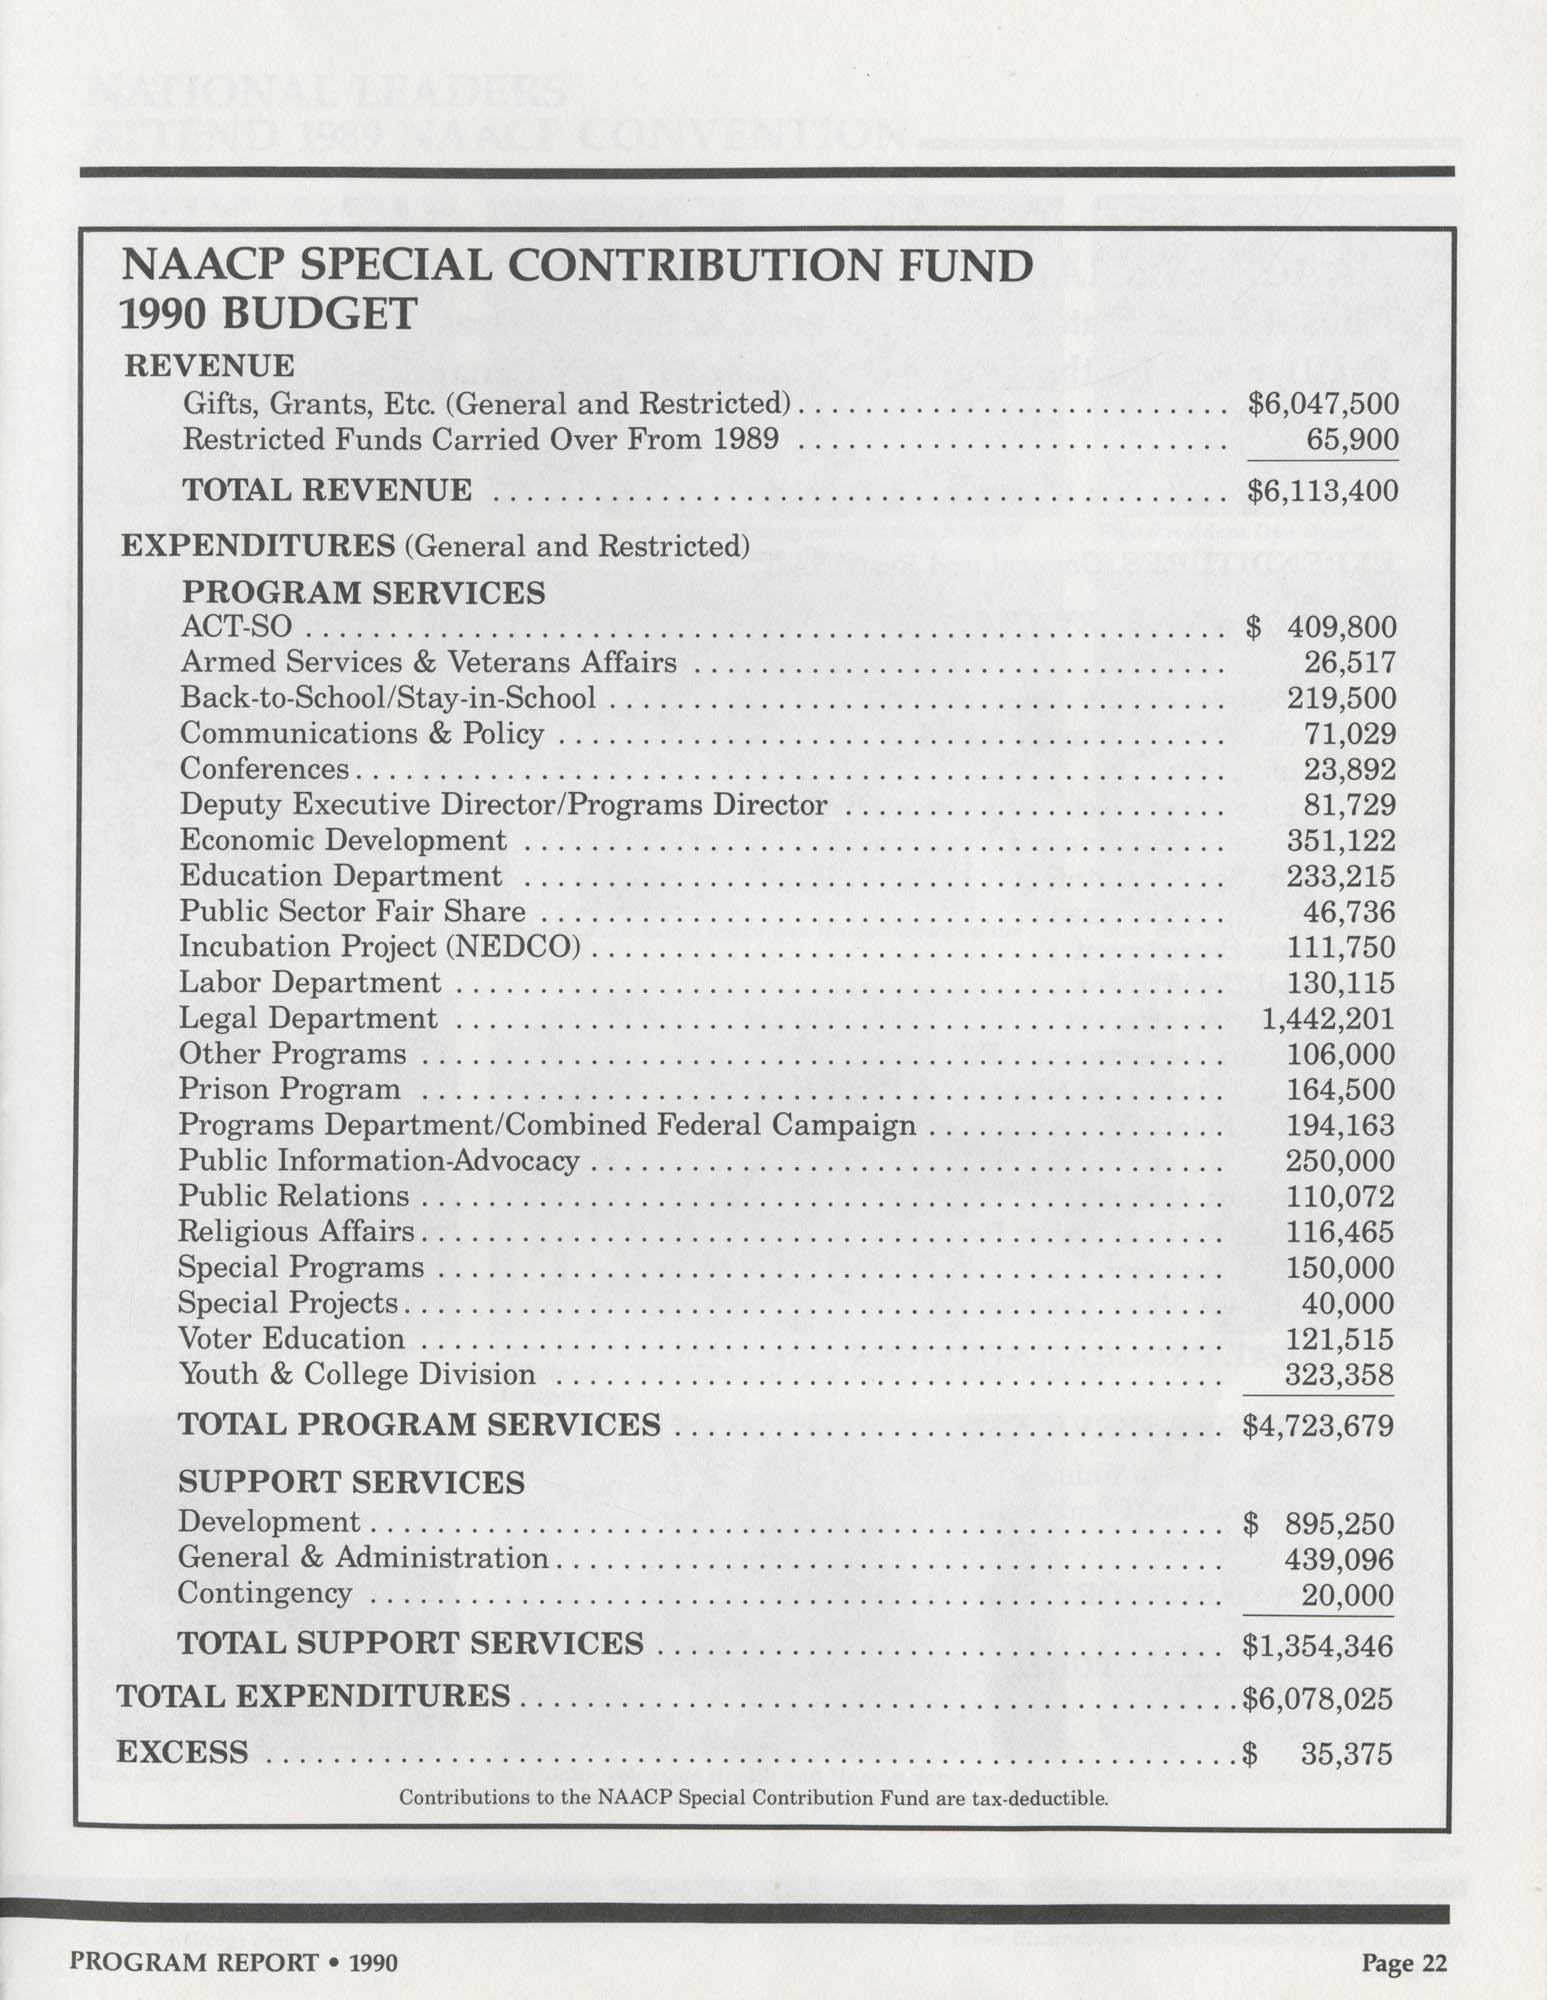 Program Report 1990, Special Contribution Fund, NAACP, Page 22